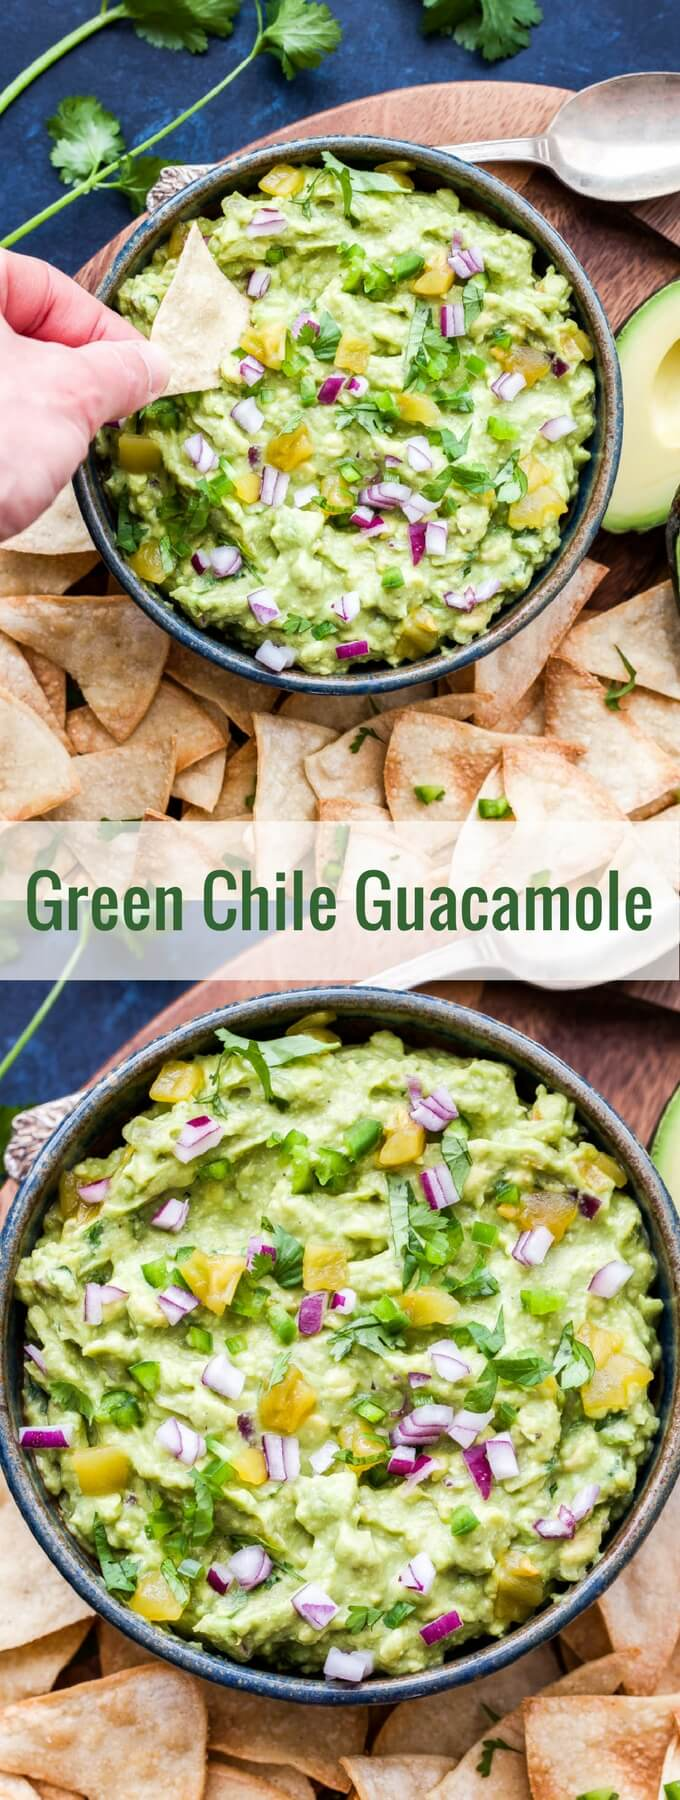 Green Chile Guacamole is the perfect way to add a little heat and smoky flavor to traditional guacamole. Serve with chips, on tacos or any of your favorite Mexican dishes! #guacamole #greenchile #dip #mexicanfood #avocados